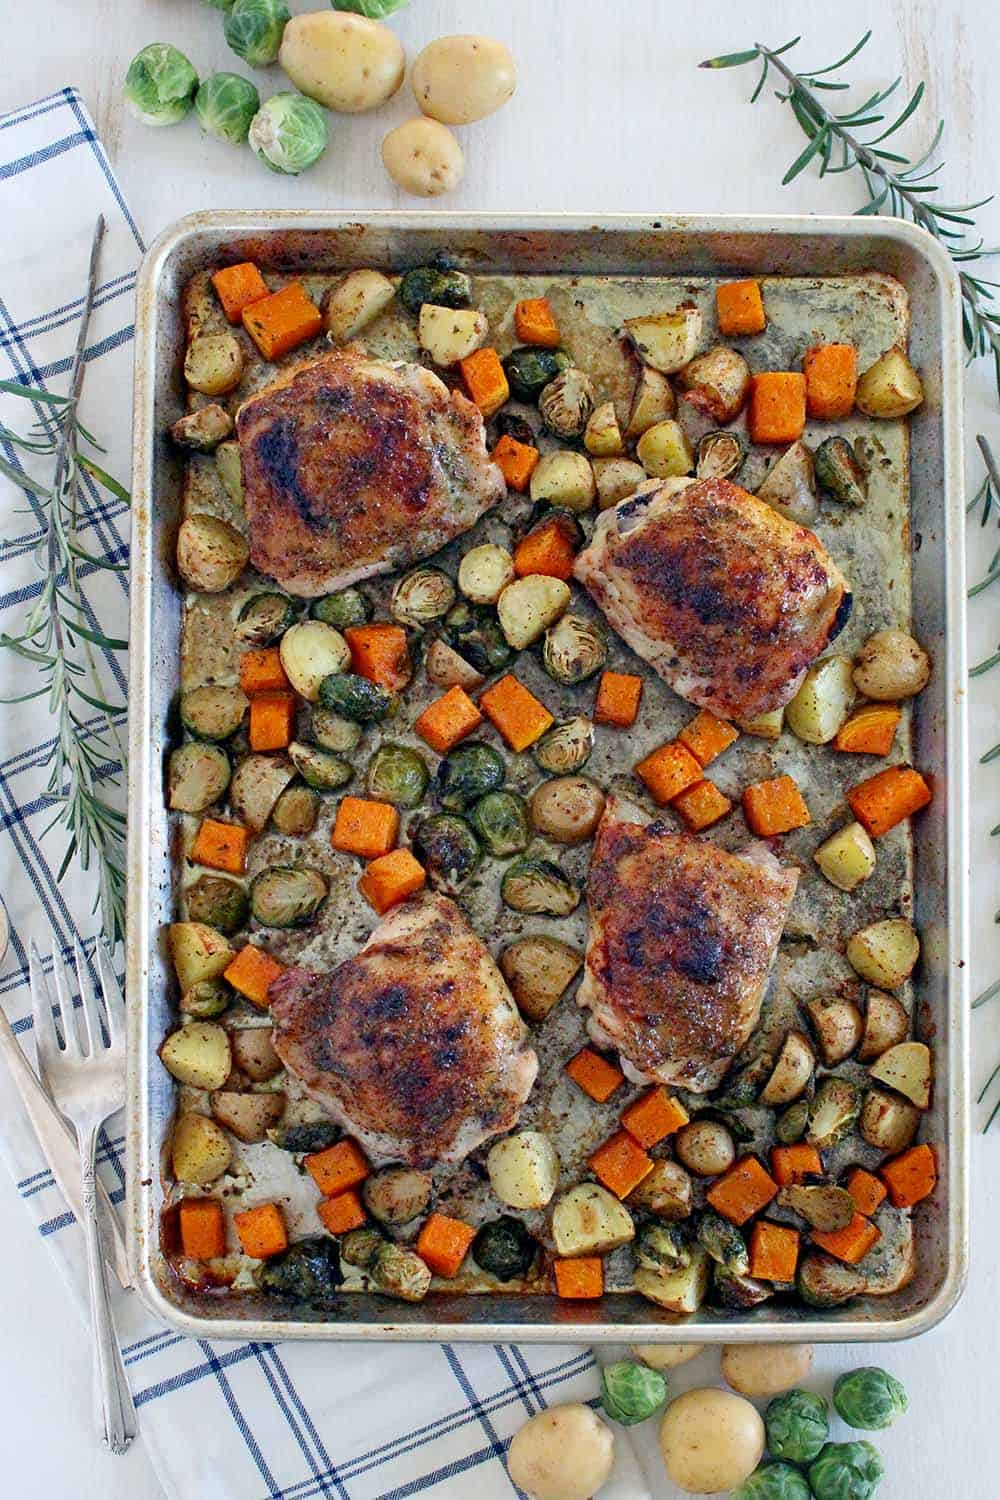 This Maple and Rosemary Glazed Chicken and Fall Veggies Sheet Pan Dinner is an easy way to make a full meal in one pan! Slightly sweet and savory at once, the flavor of the glaze is amazing and coats every single bite. The whole family will love this. #sheetpandinner #paleo #brusselssprouts